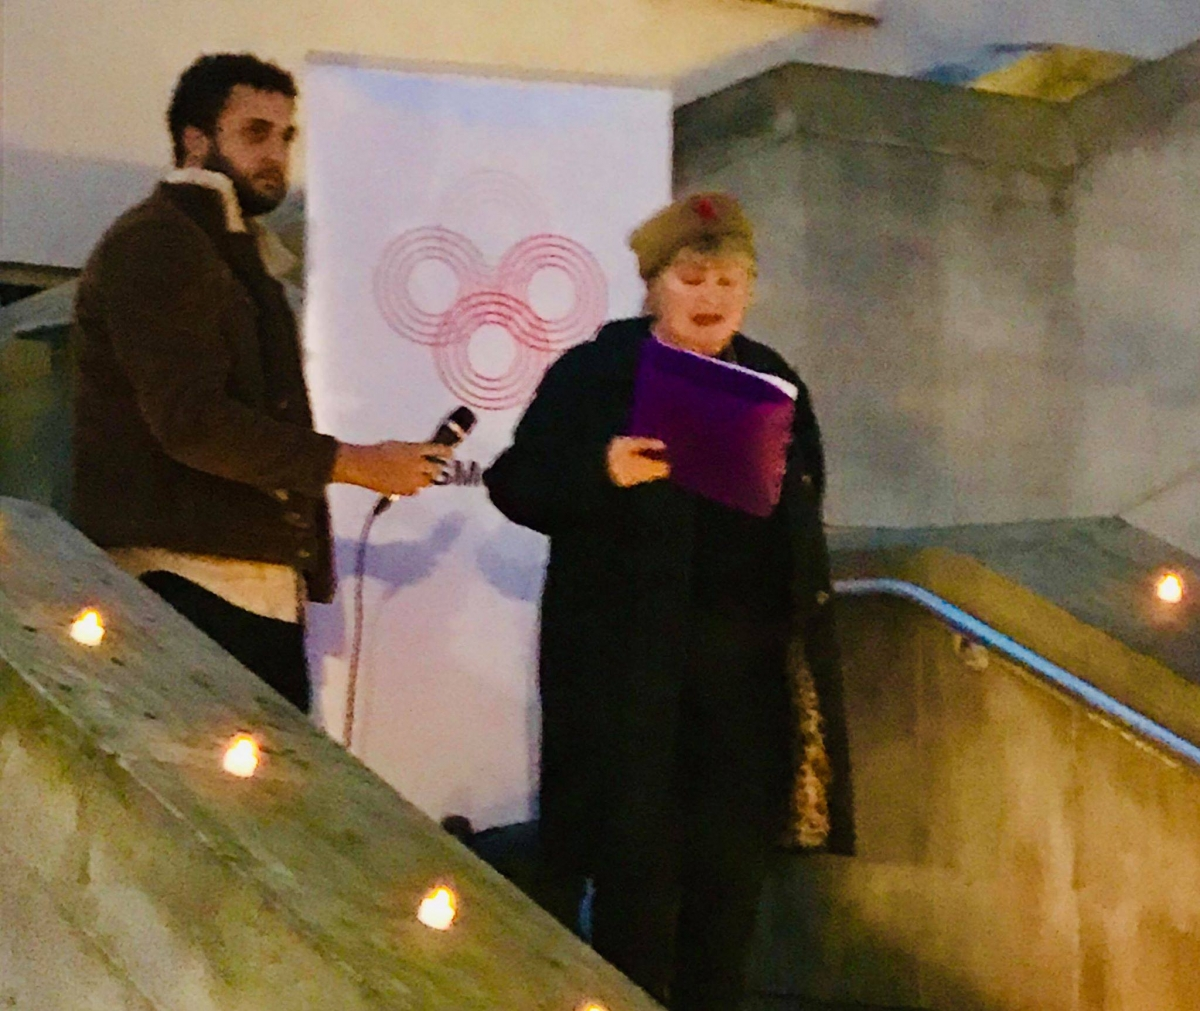 World AIDS Day Vigil (Dec 1 2018)